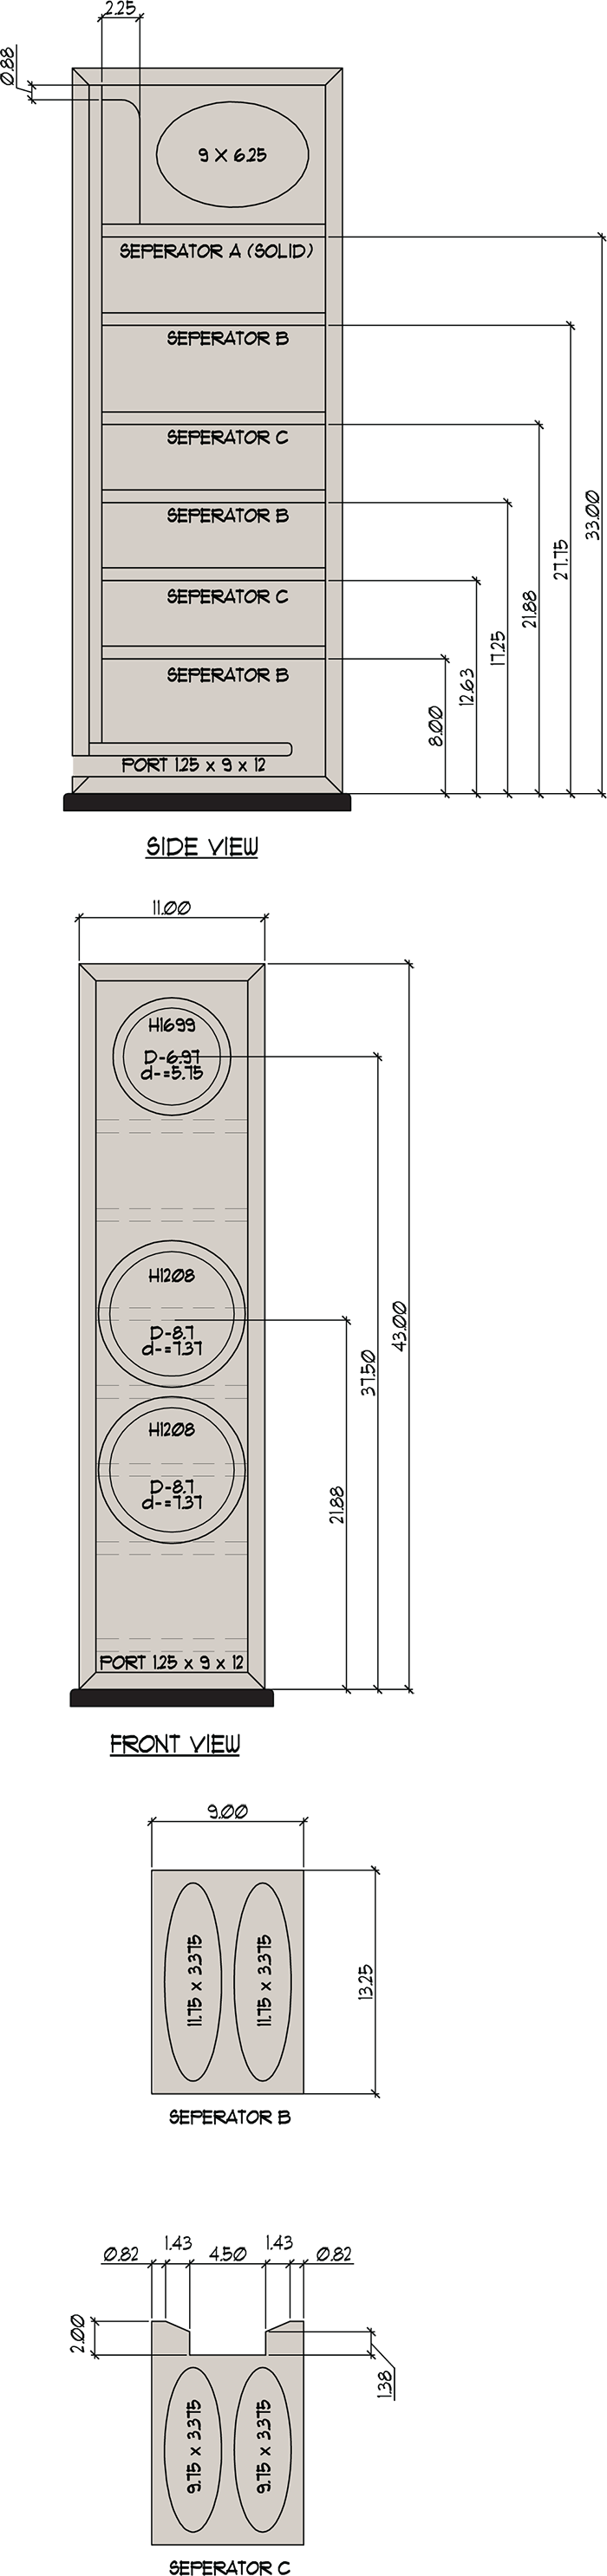 CX871 Cabinet Drawing